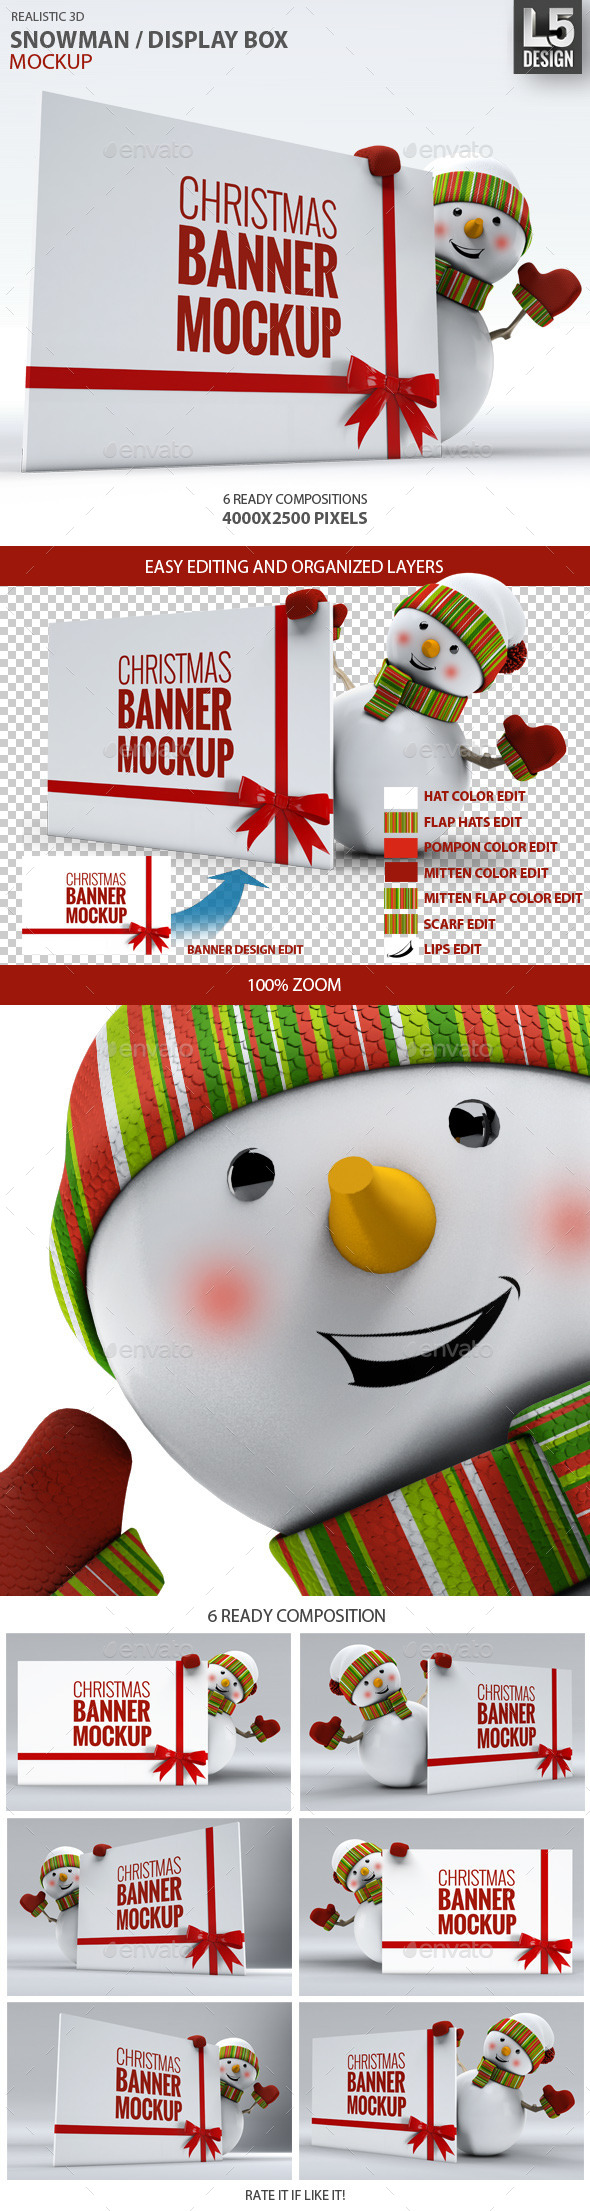 GraphicRiver Snowman Display Box Mock-up 9604235